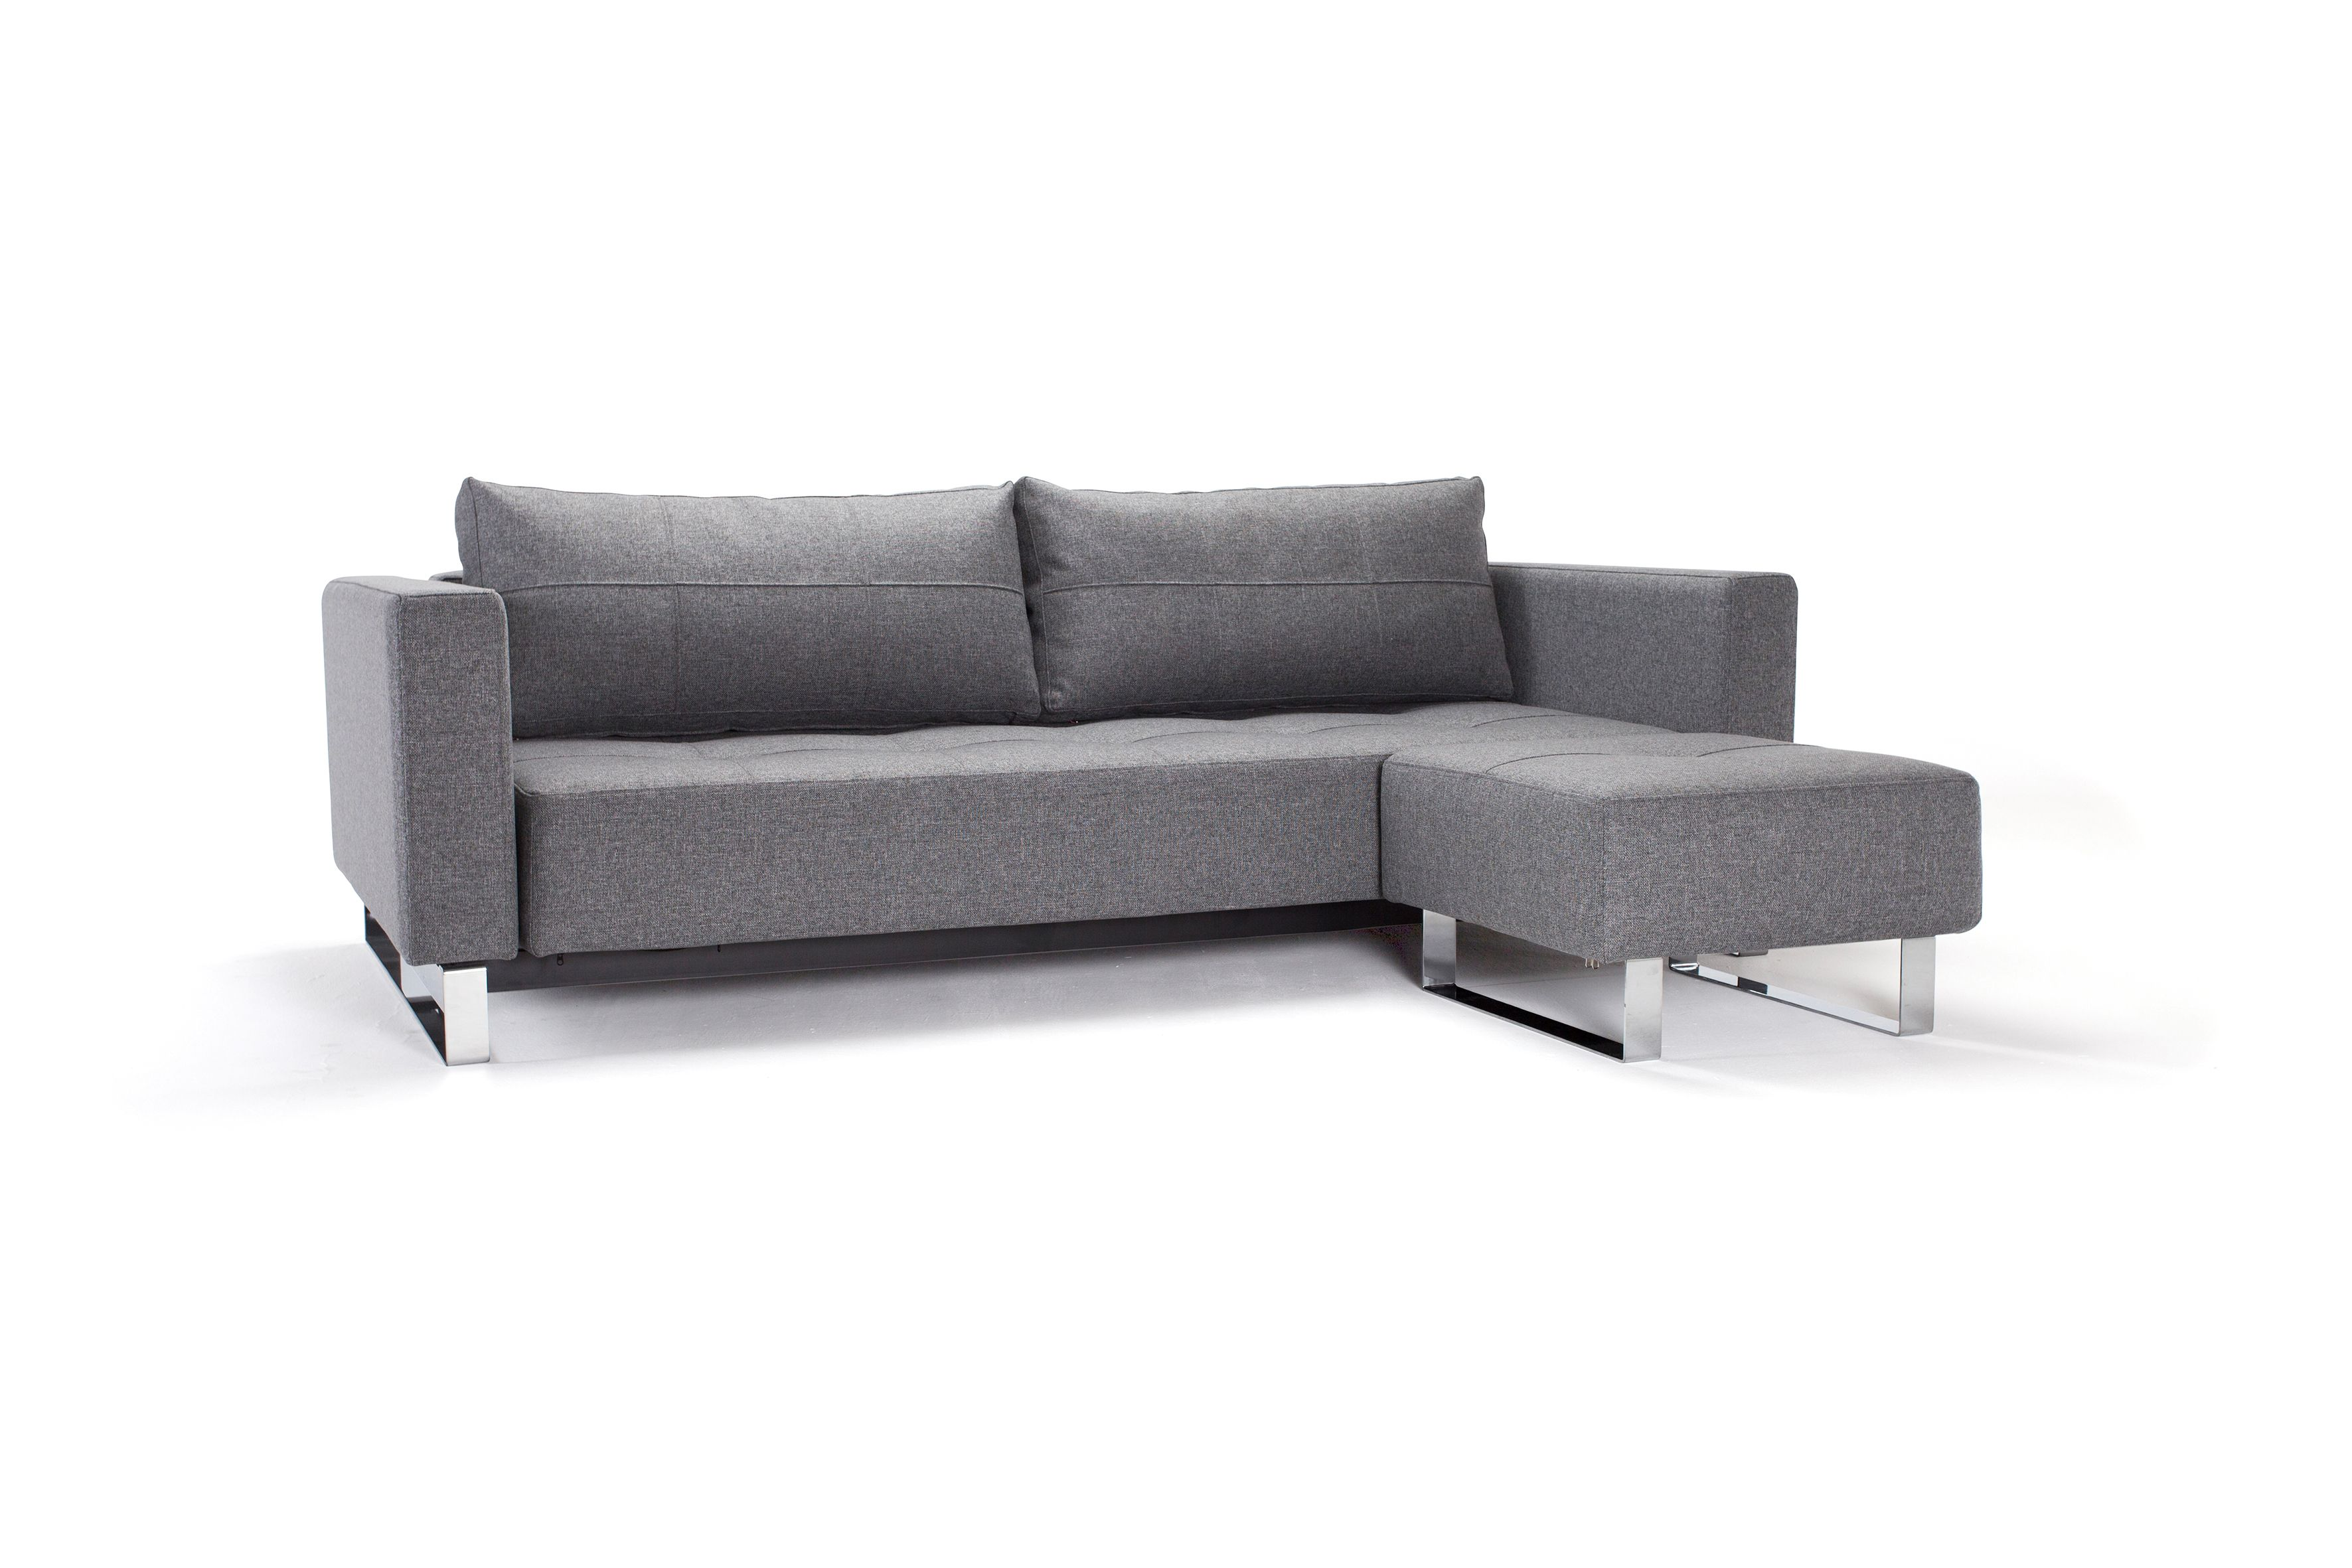 Innovation Sessel Cassius Excess Lounger Sofa Bed Innovation Living Melbourne